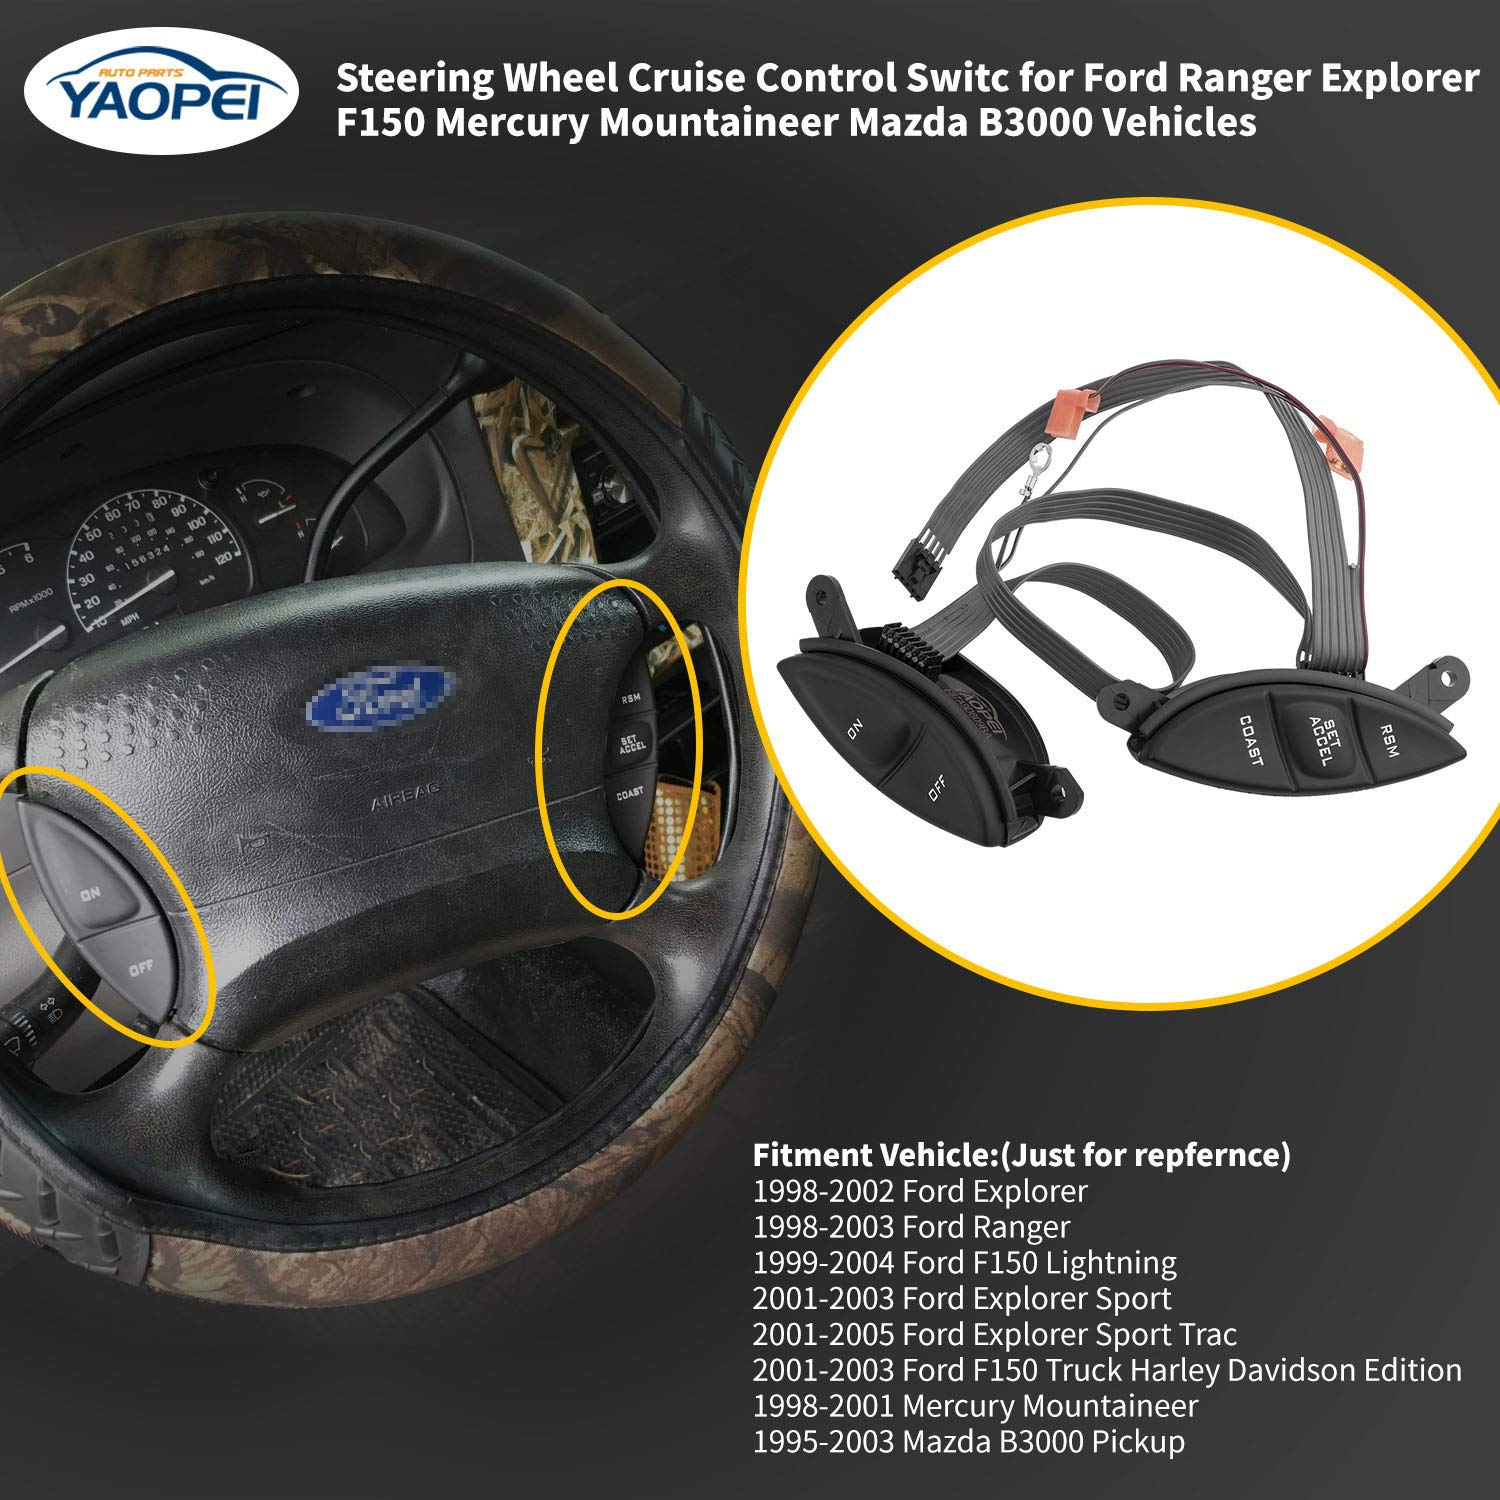 YAOPEI F87A-9D809-BA Steering Wheel Cruise Control Switch for Ford Explorer Ranger F150 Mercury Mountaineer Mazda Replace OE# SW-5928 F87Z-9C888-BB